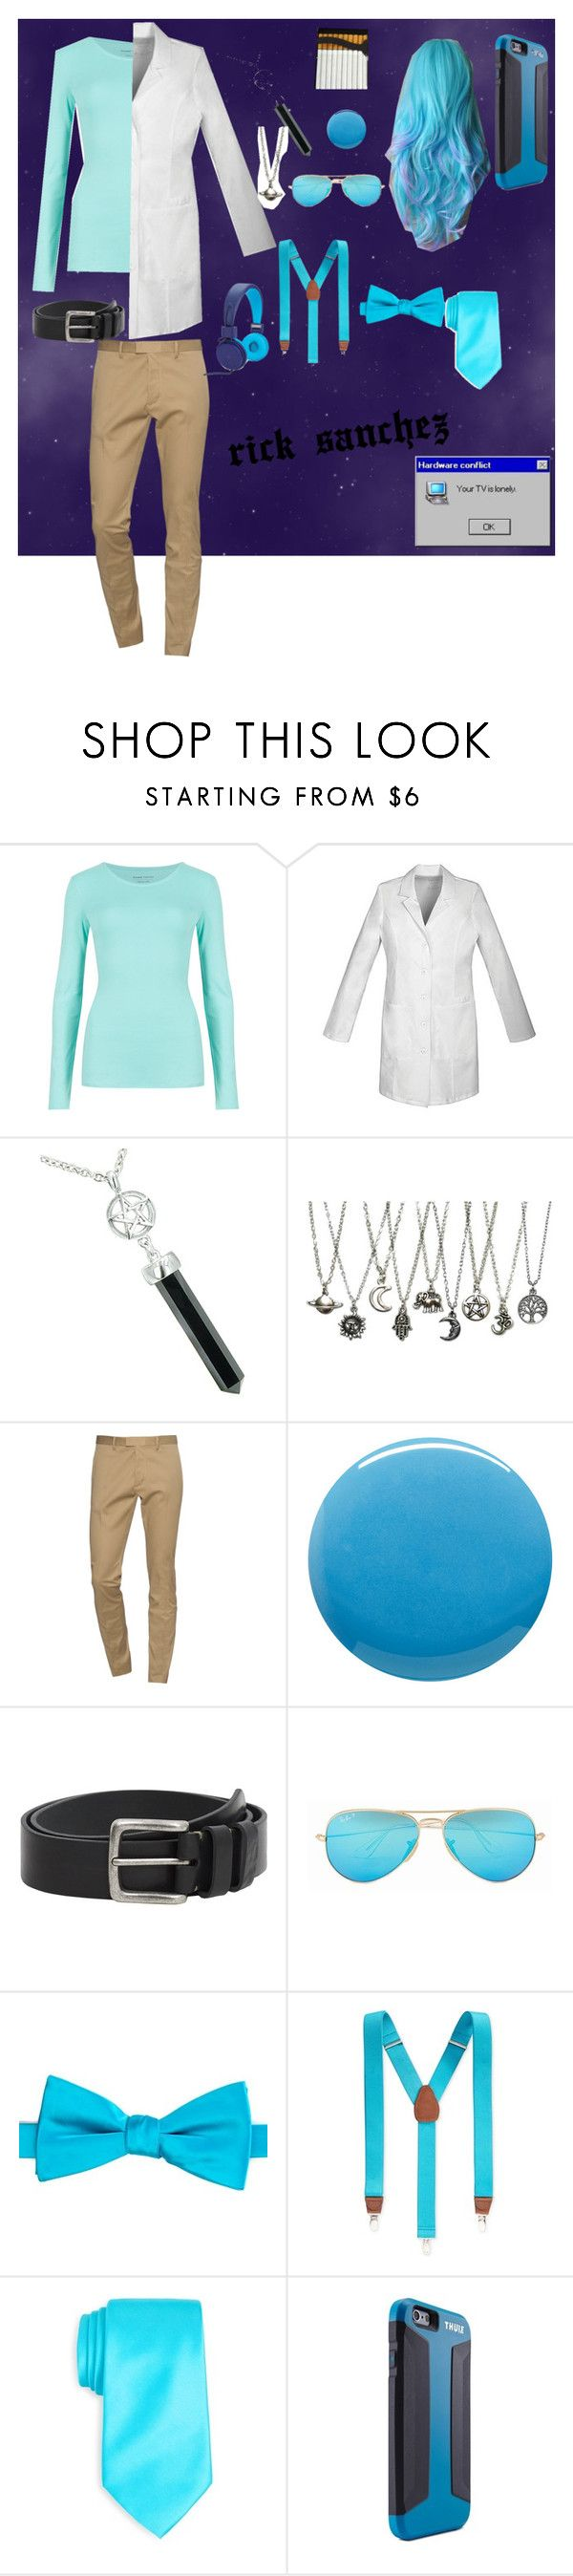 """rick sanchez"" by stanchez ❤ liked on Polyvore featuring M&S Collection, Cherokee, Dsquared2, Lauren B. Beauty, MANGO MAN, Ray-Ban, Saddlebred, Club Room, Thule and Polaroid"